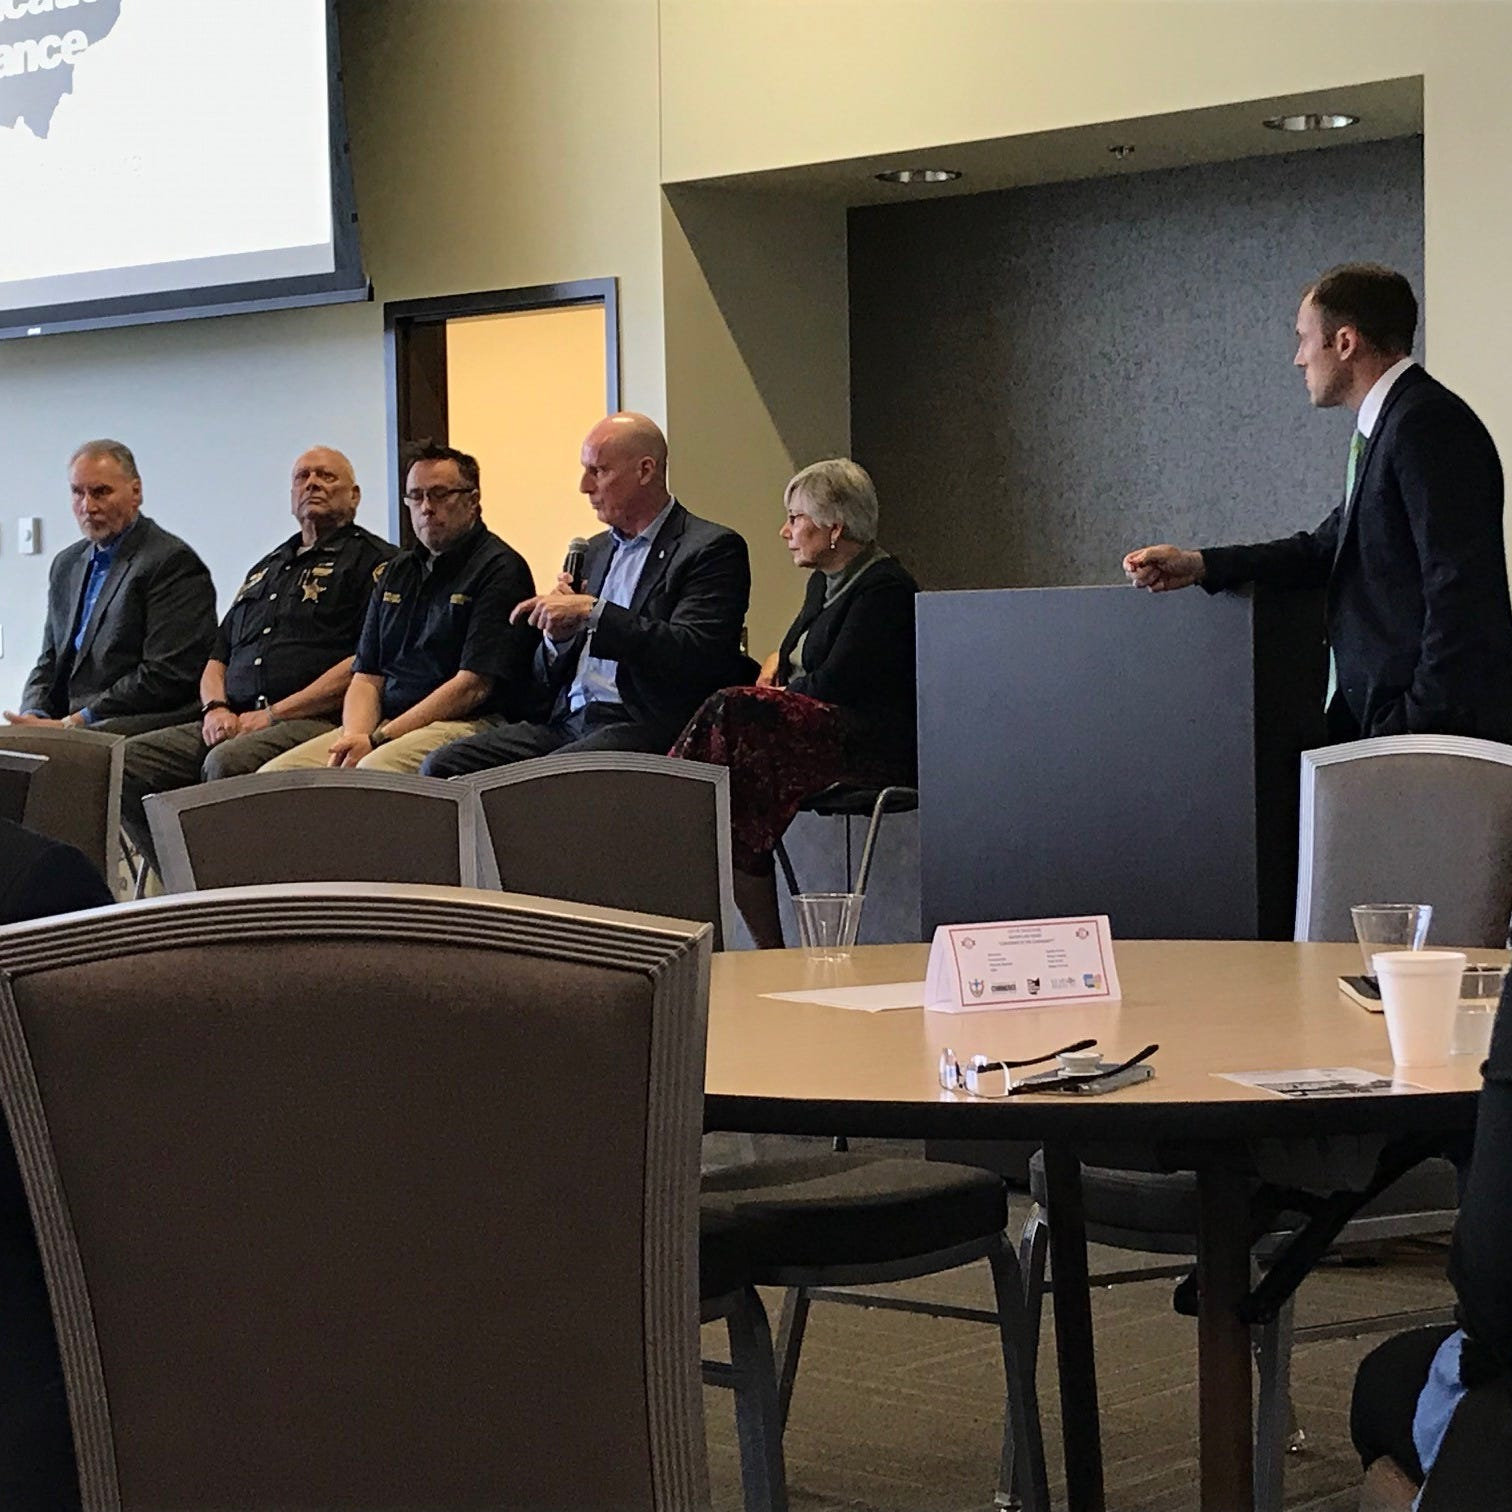 Community leaders come together for opioid education